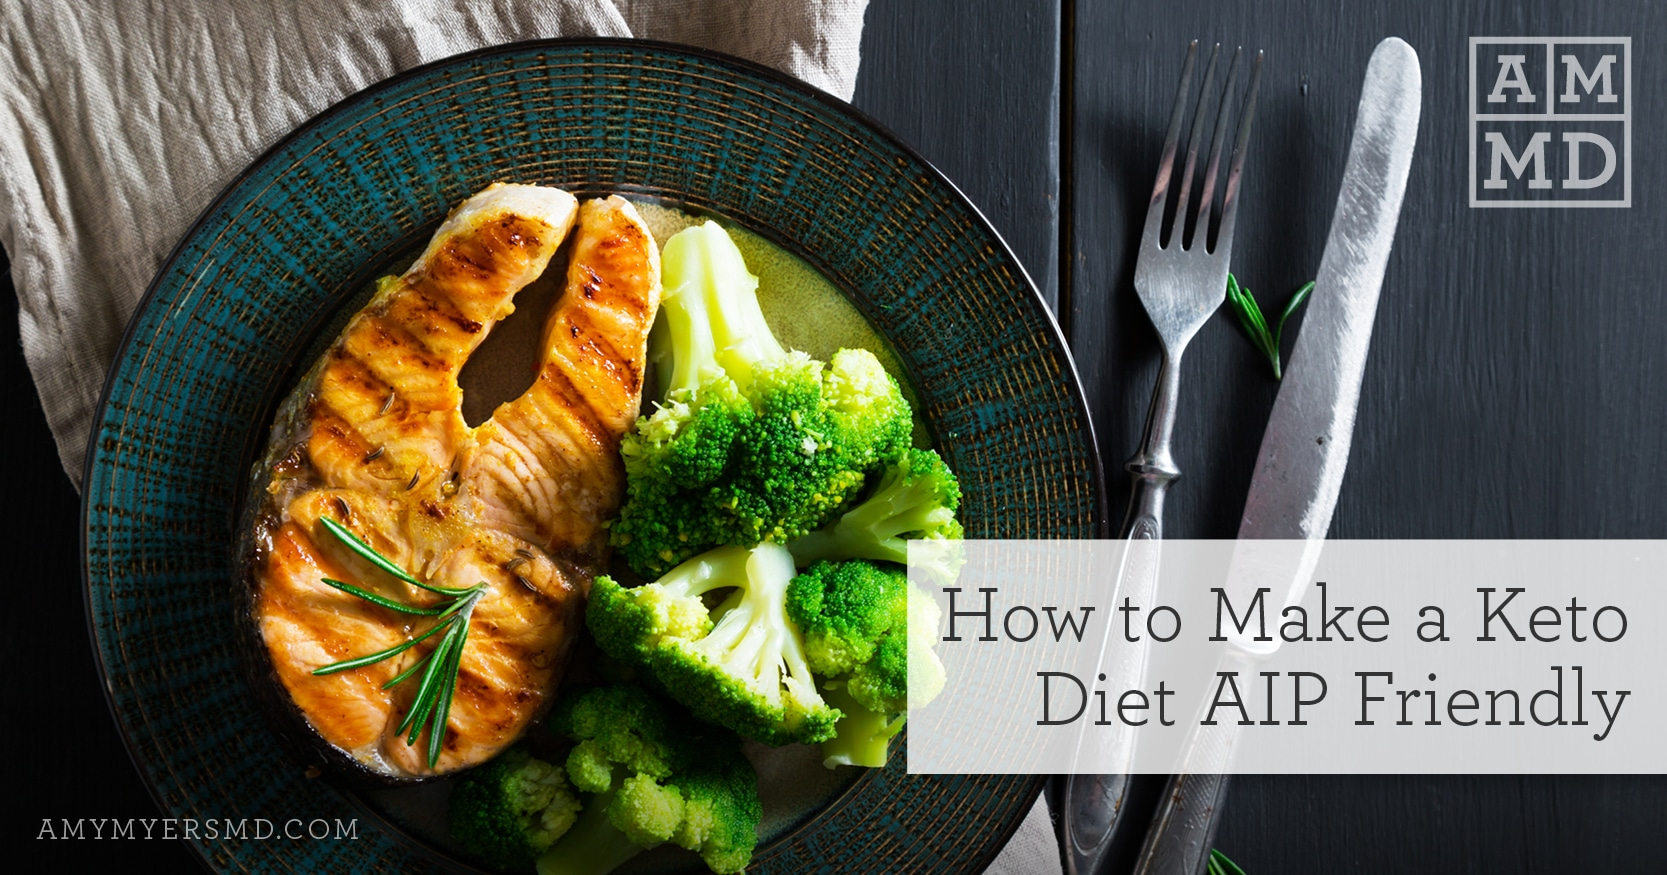 How to Make a Keto Diet AIP Friendly - Fish and Broccoli - Amy Myers MD